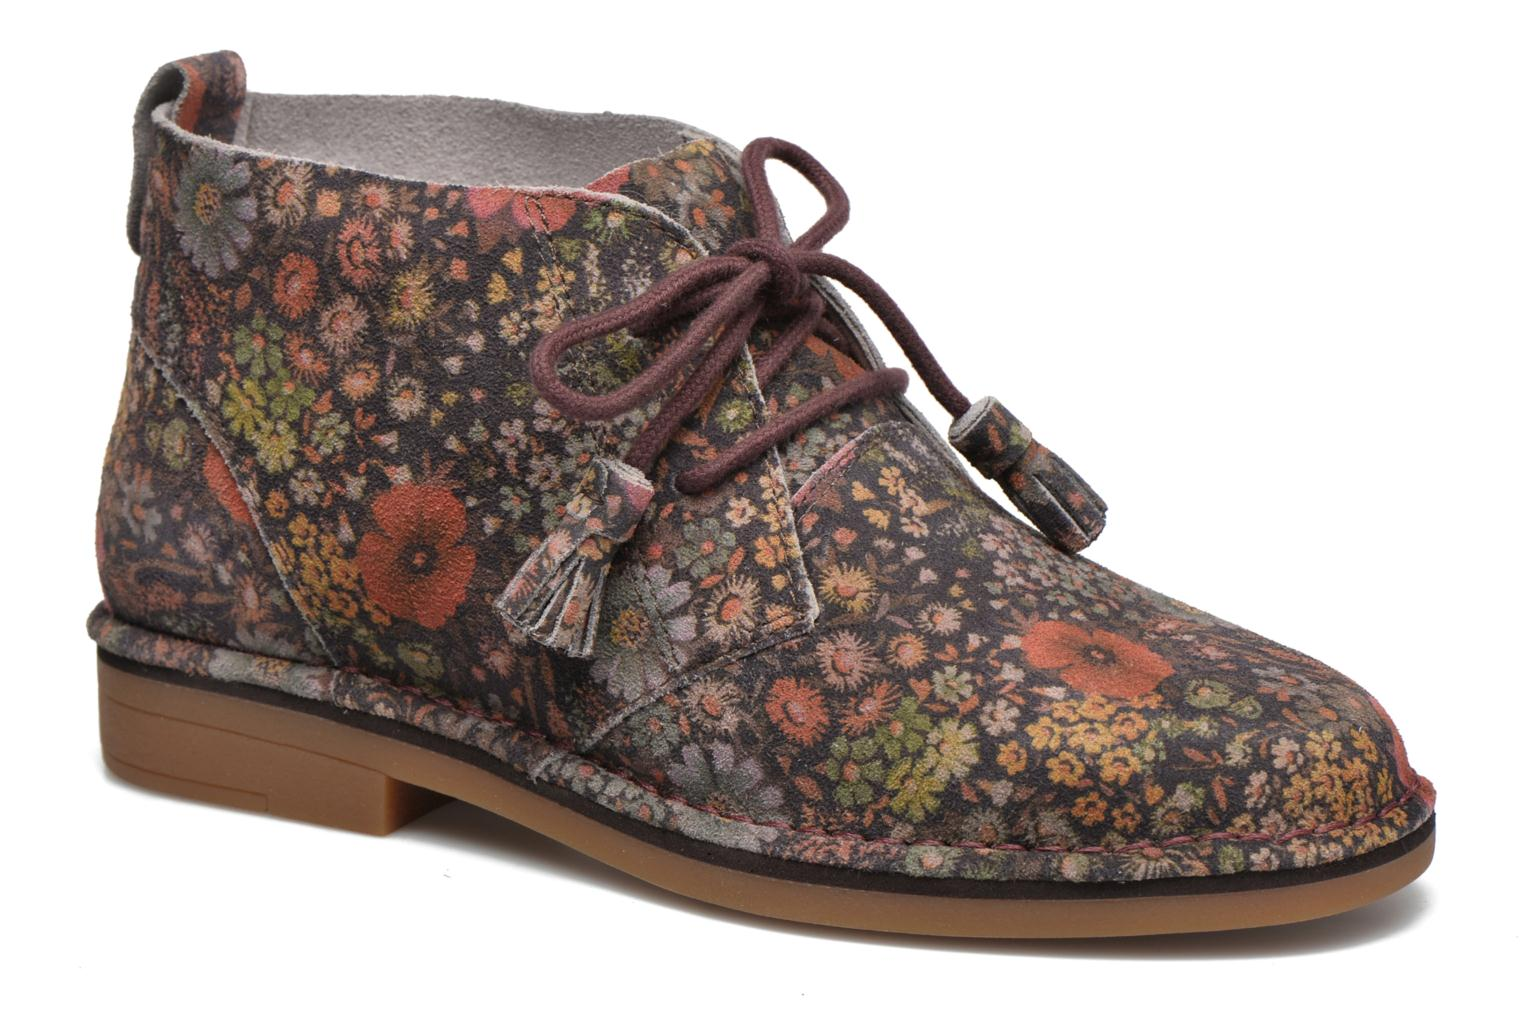 Bottines et boots Hush Puppies Cyra Catelyn Multicolore vue détail/paire